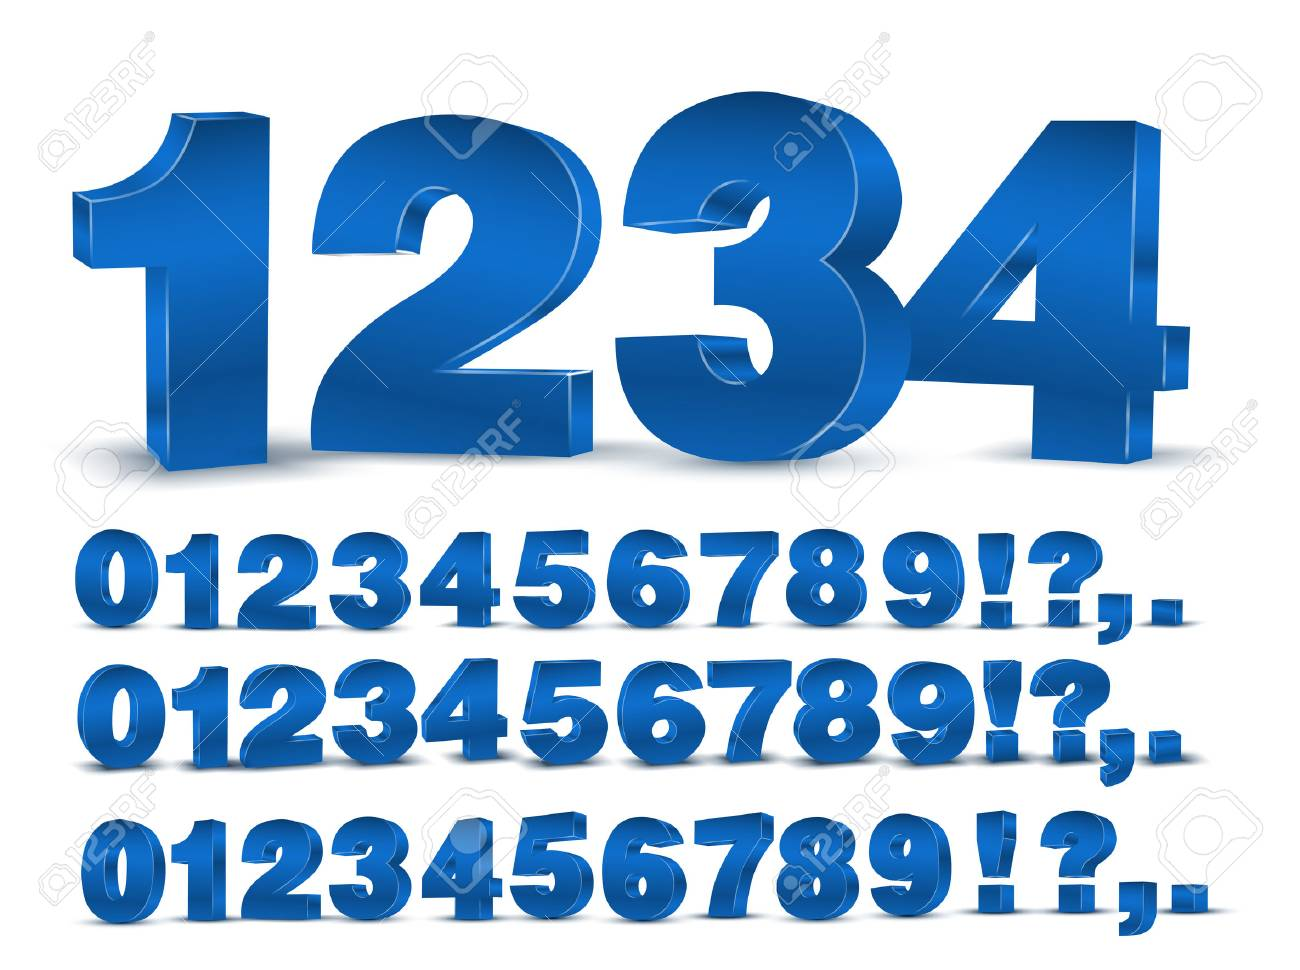 Four set of blue colored 3d vector numbers, from to 9 - 61713566